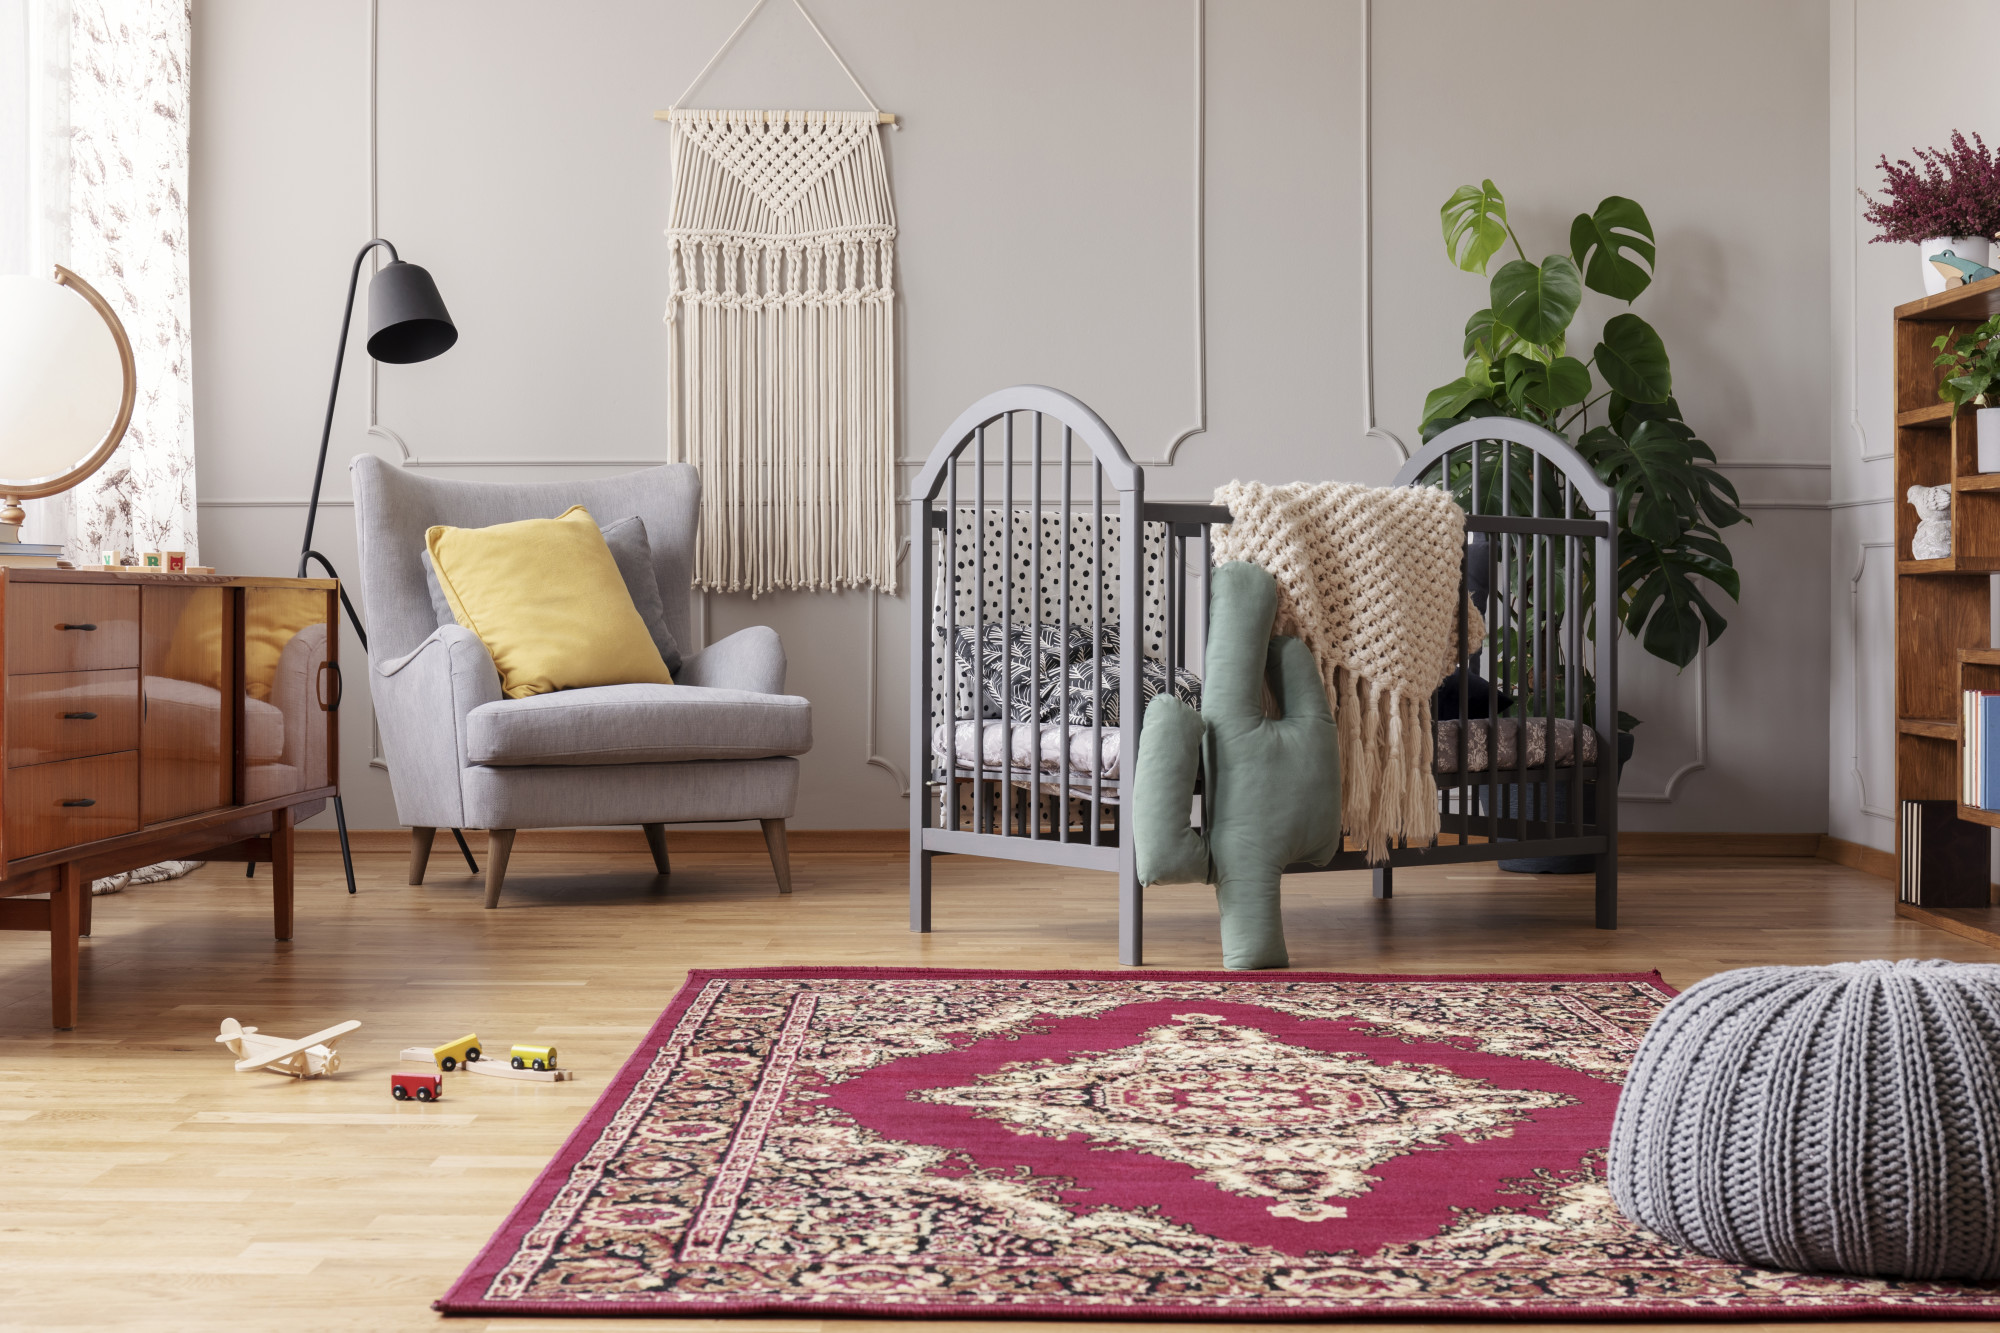 Spice Up Your Living Room: How to Decorate With a Persian Rug